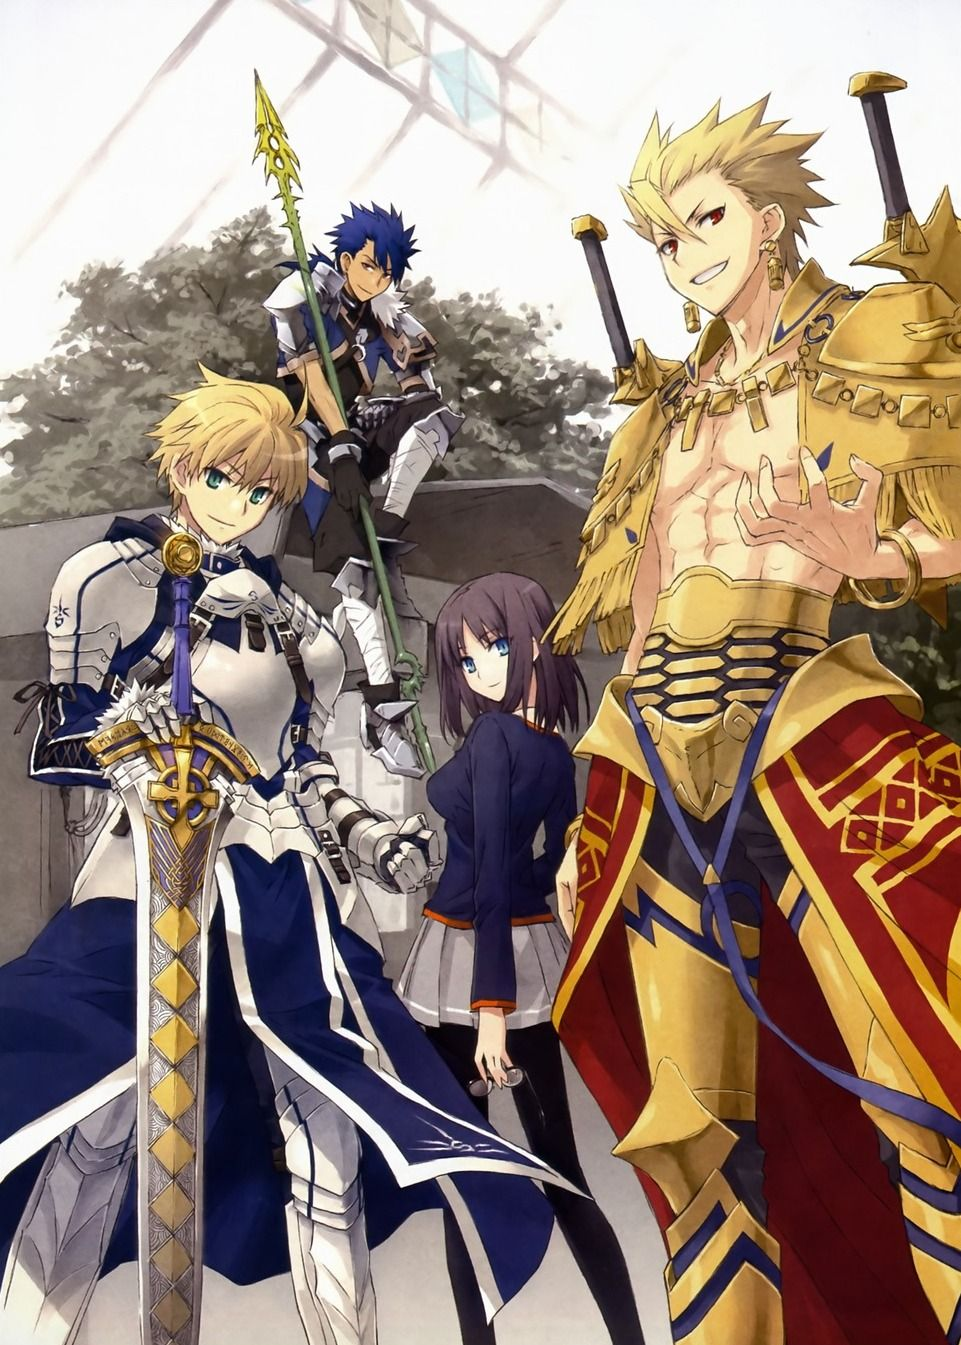 Fate, as it should be! (As a reverse harem? Lol i mean i